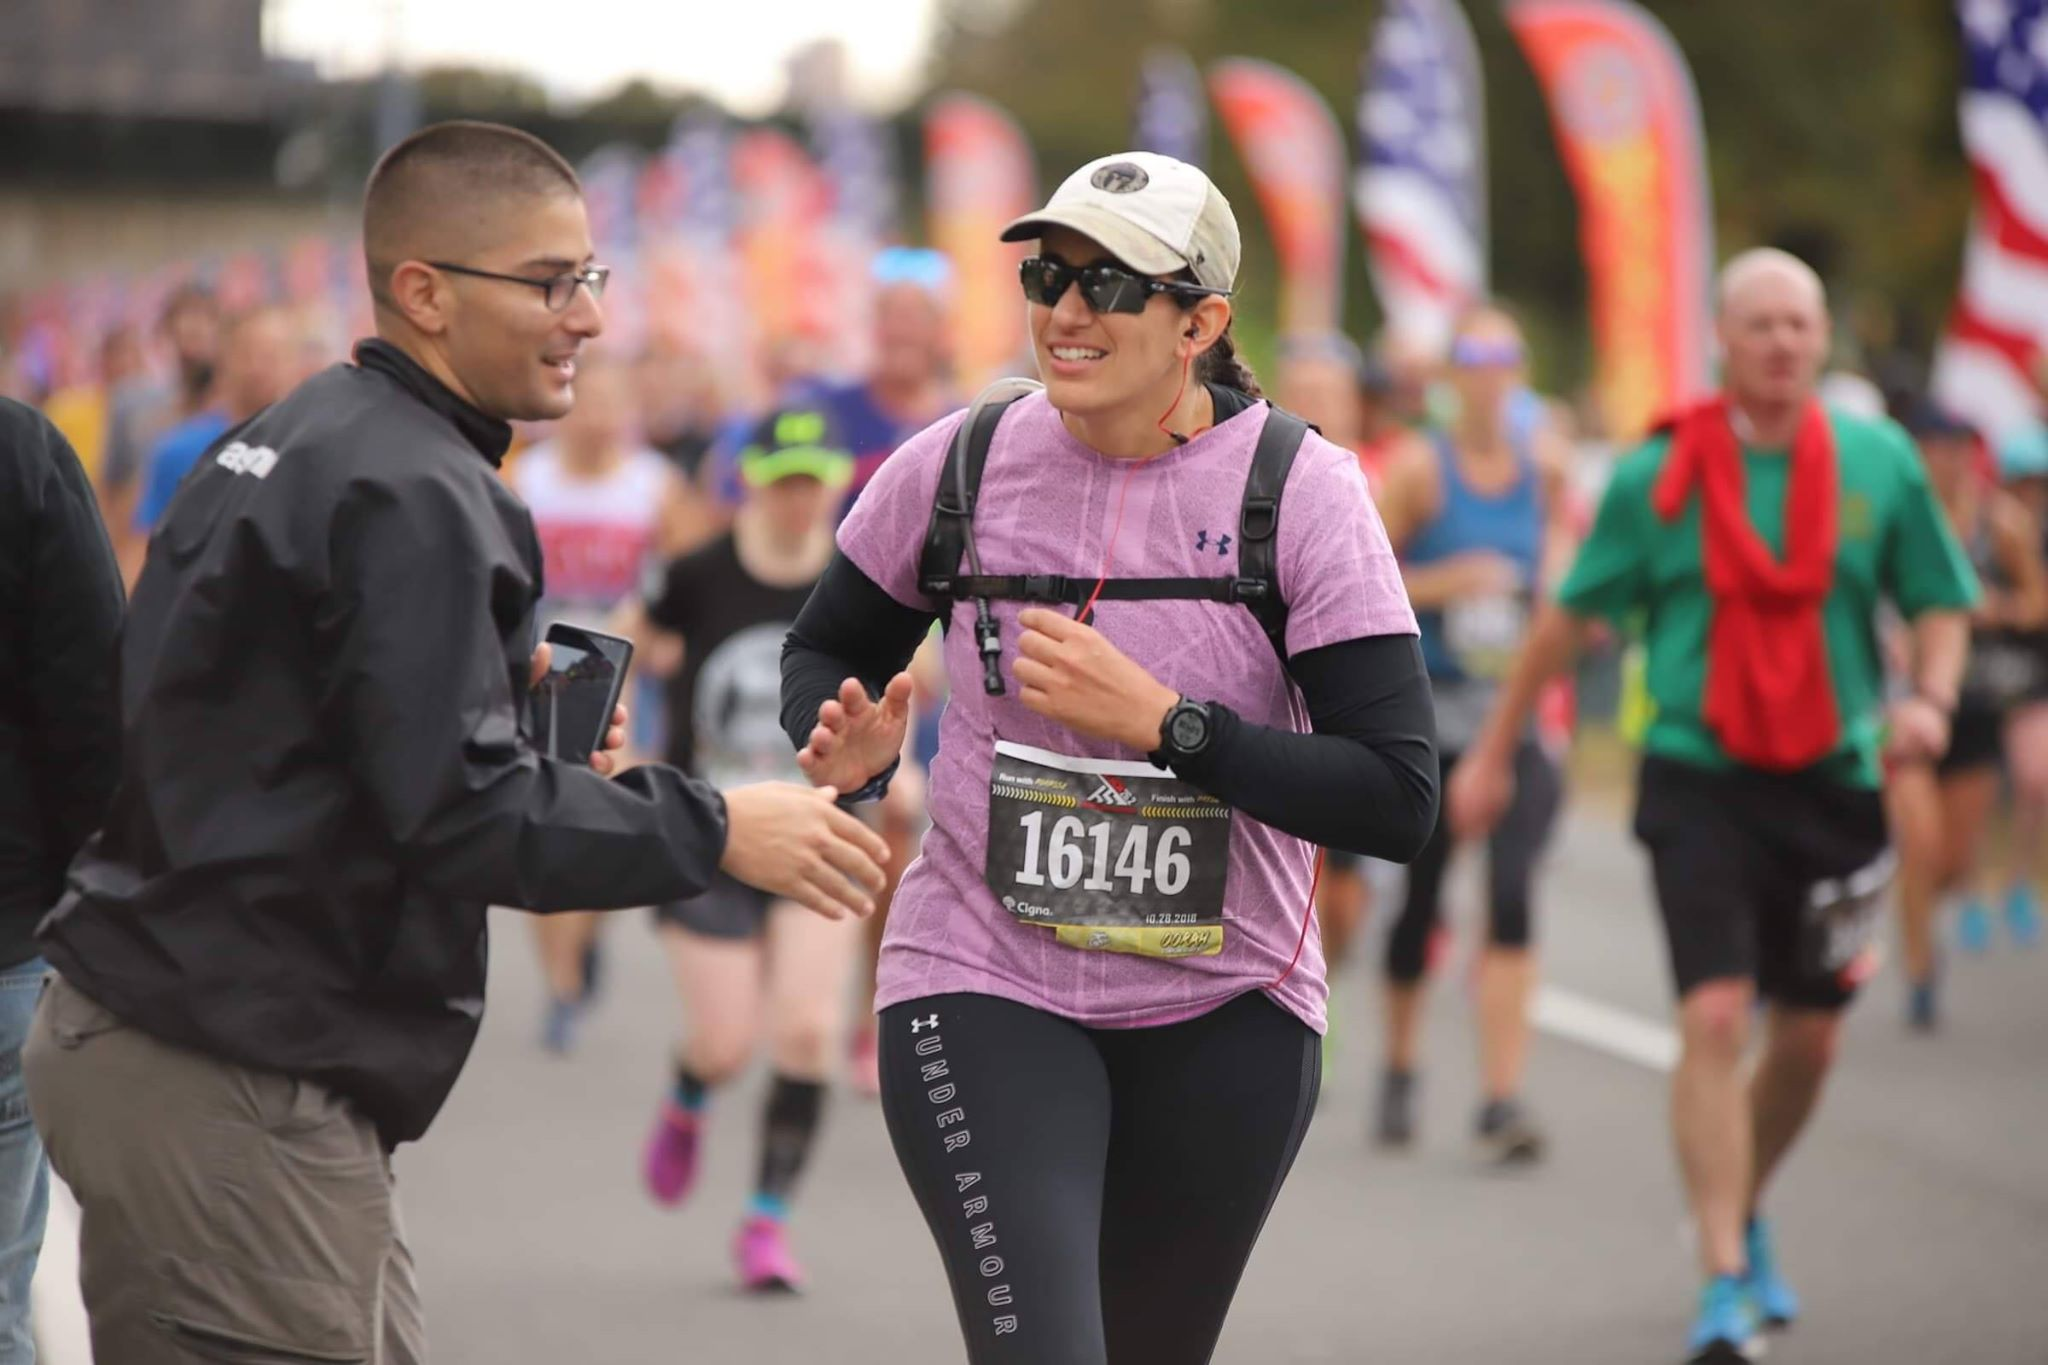 Running the Marine Corps Marathon.